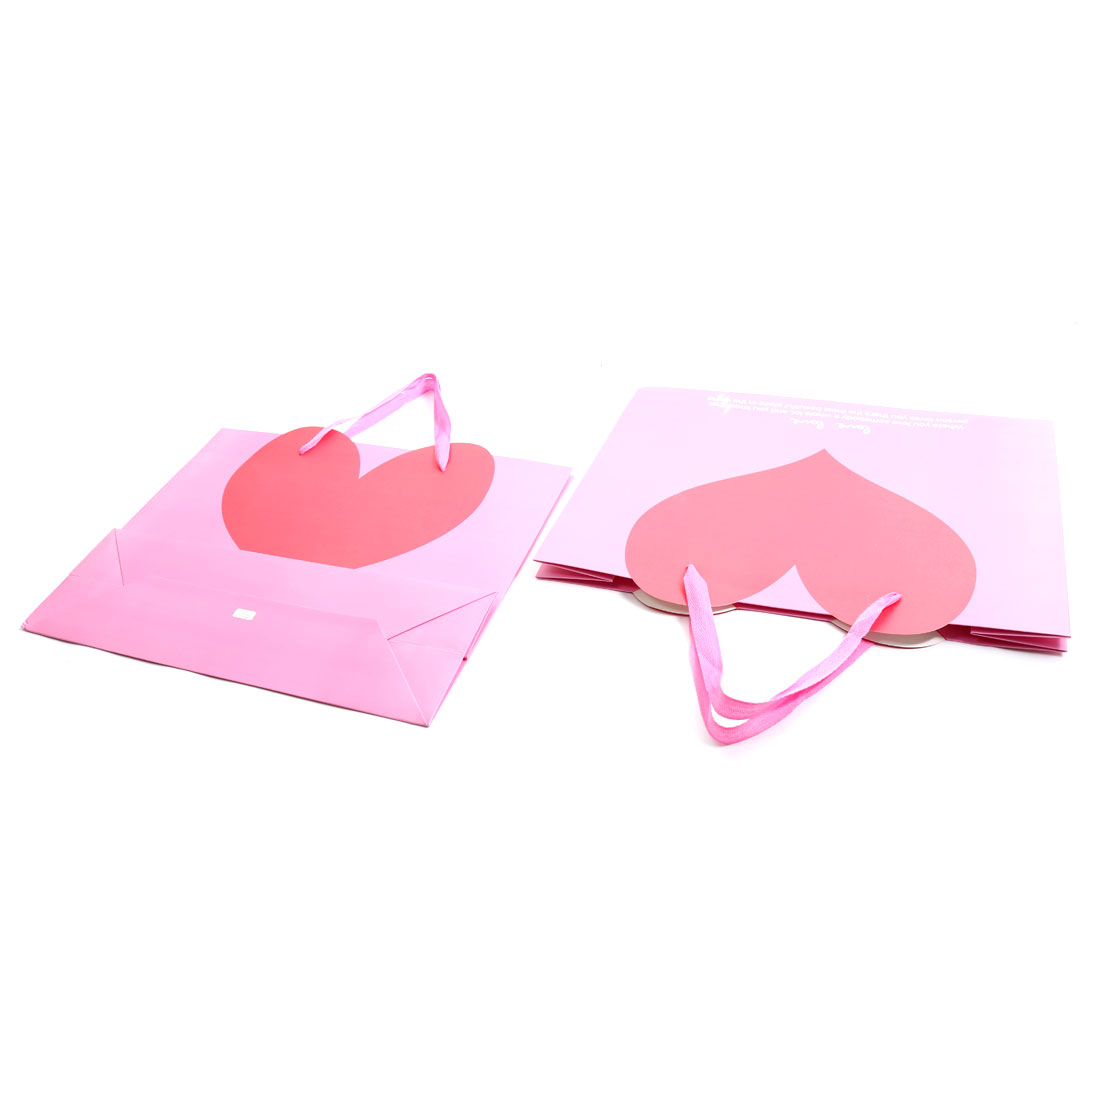 Paper Love Heart Pattern Wedding Clothes Valentine's Day Gift Bags Holder Pink 2pcs